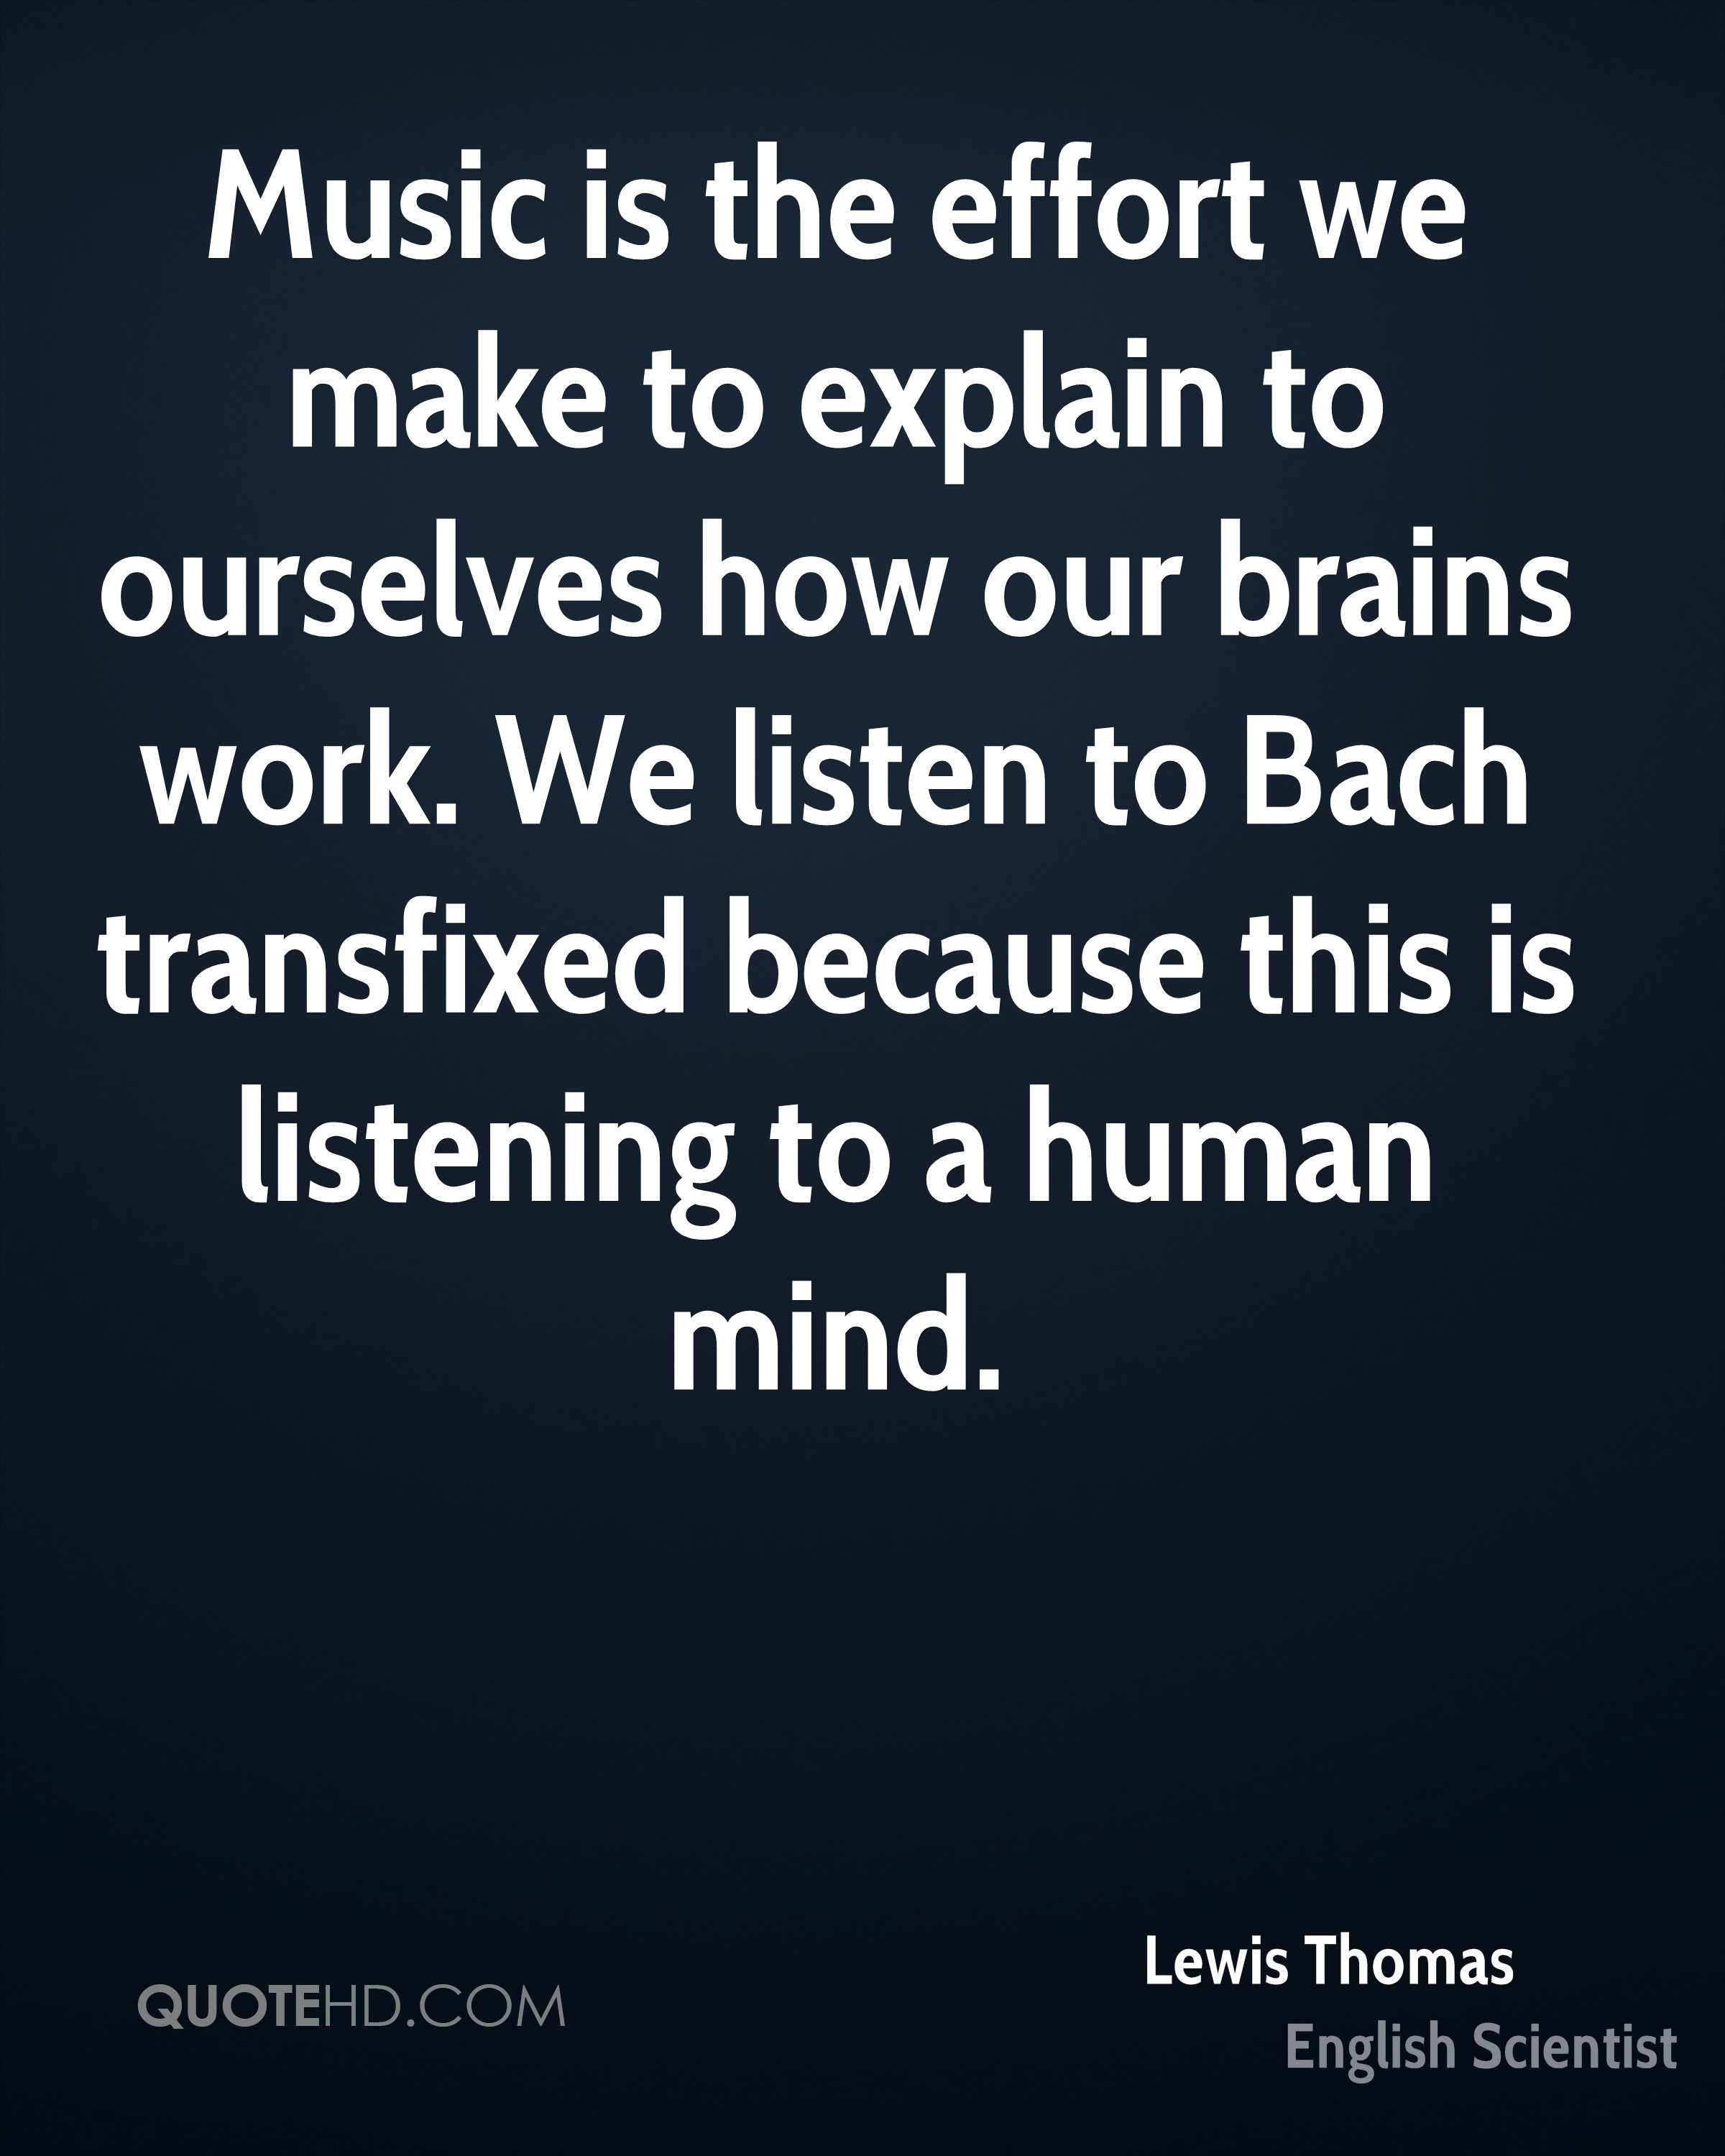 The Psychology of Music: Why We Listen to Music and How It Affects The Mind